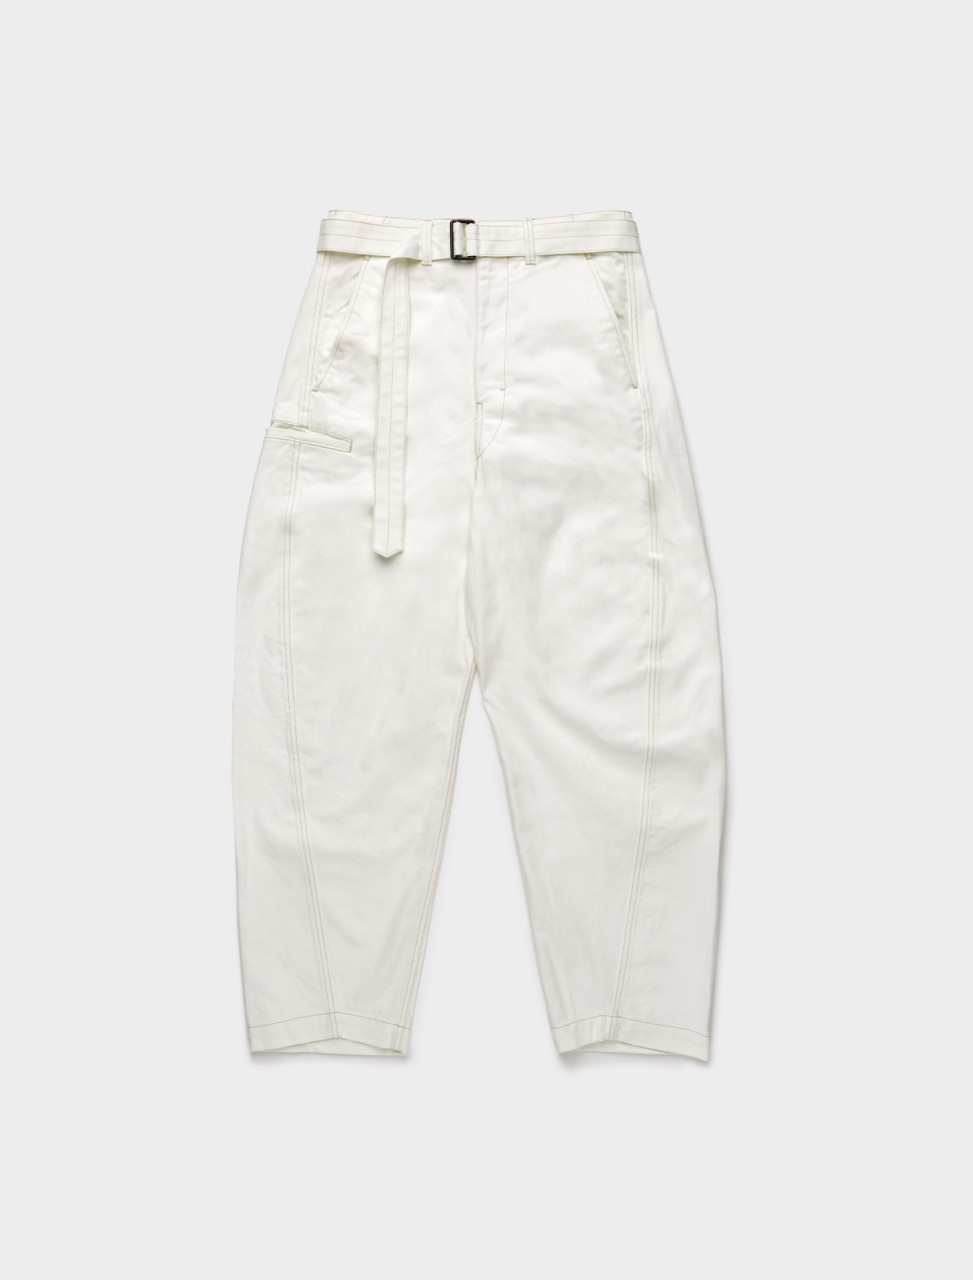 218-M-203-PA137-LD025-001 LEMAIRE TWISTED TROUSERS WHITE